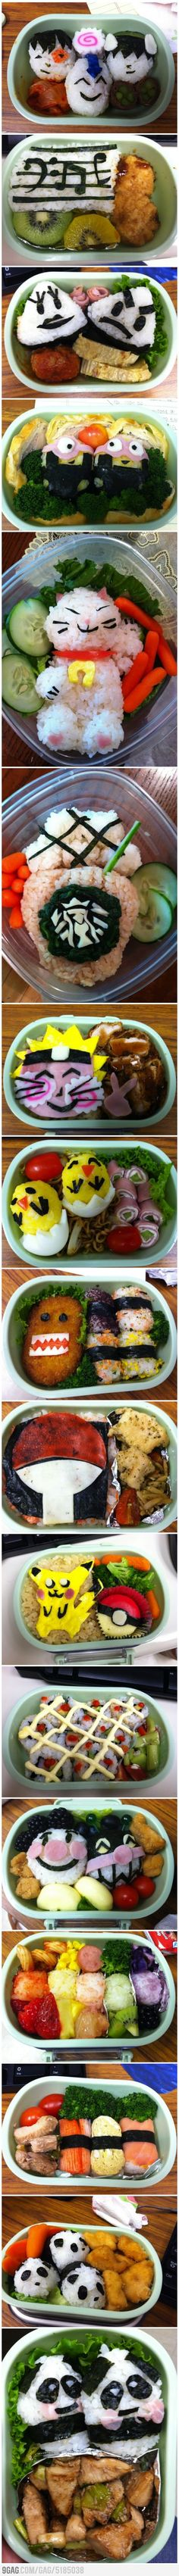 Back to school ... prepare your kids this amazing lunches :)